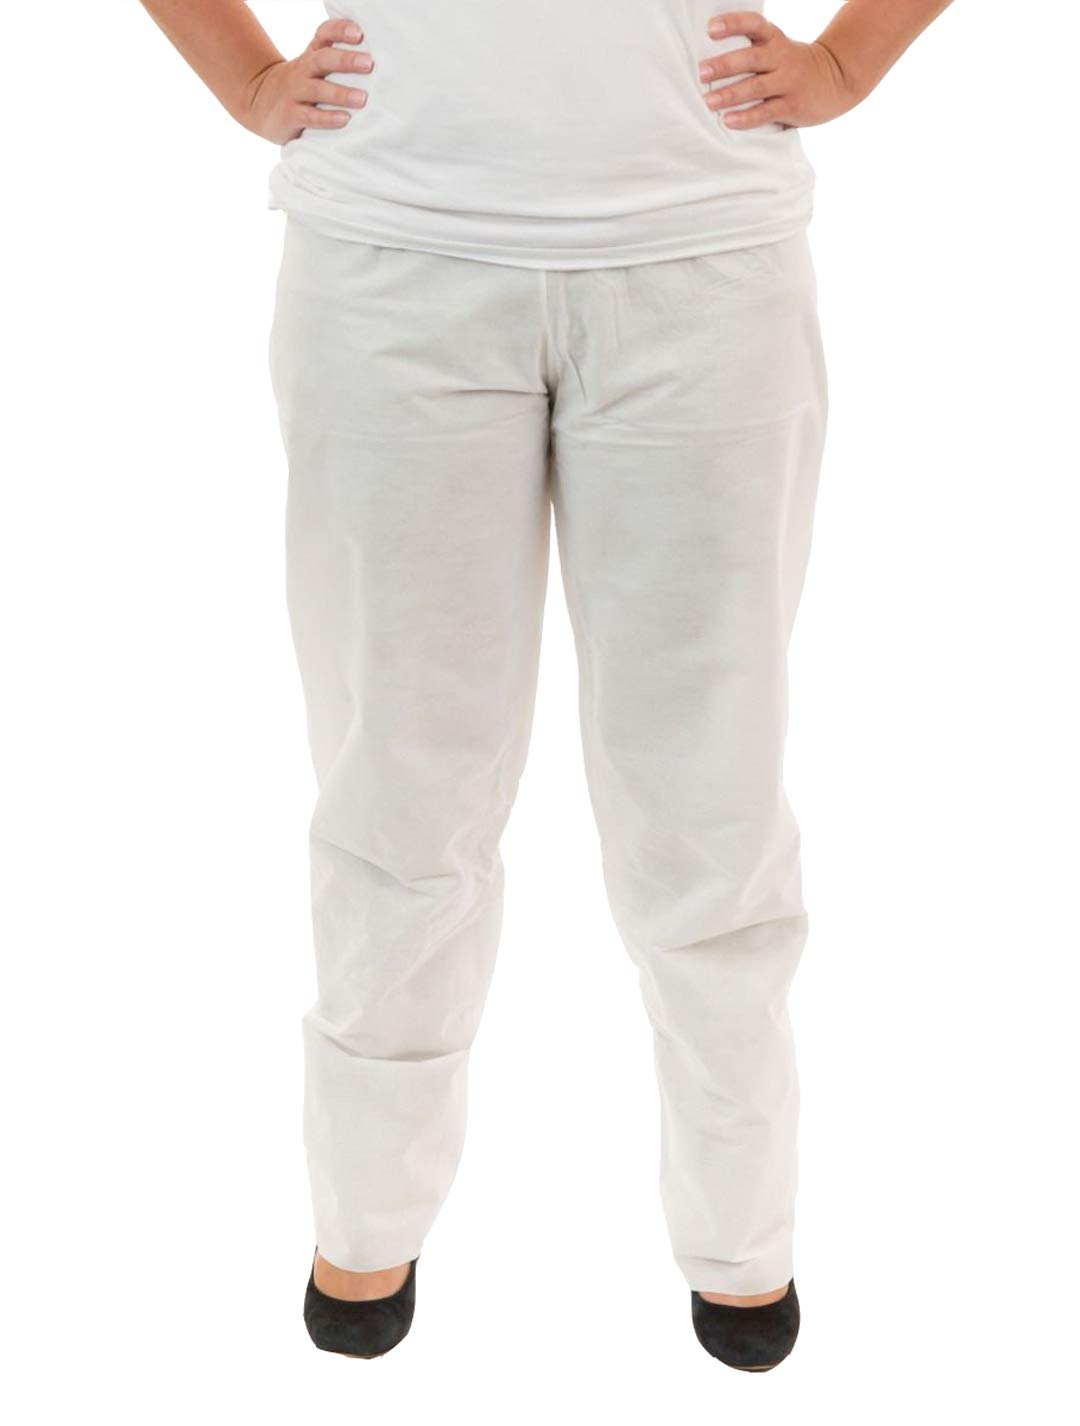 International Enviroguard SMS Pants (White) with Elastic Waist | General Cleanup & Protection (3XL, Case of 30)